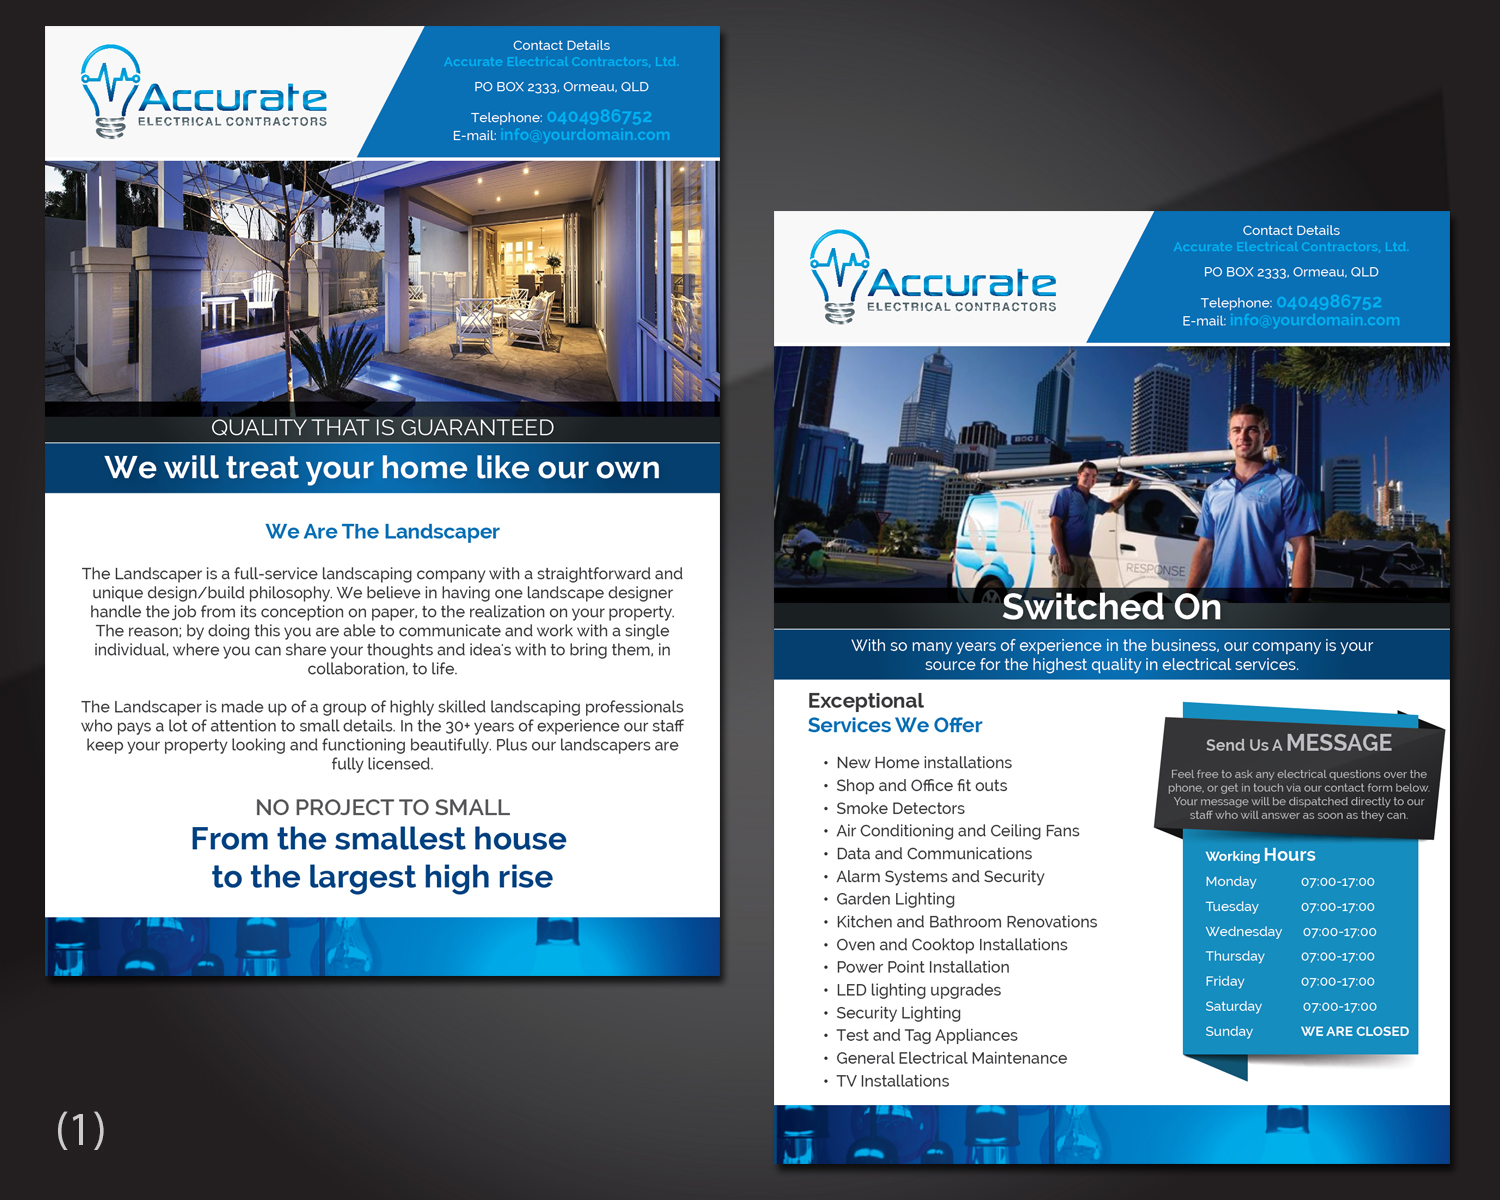 Elegant, Playful, Electrical Flyer Design for Accurate